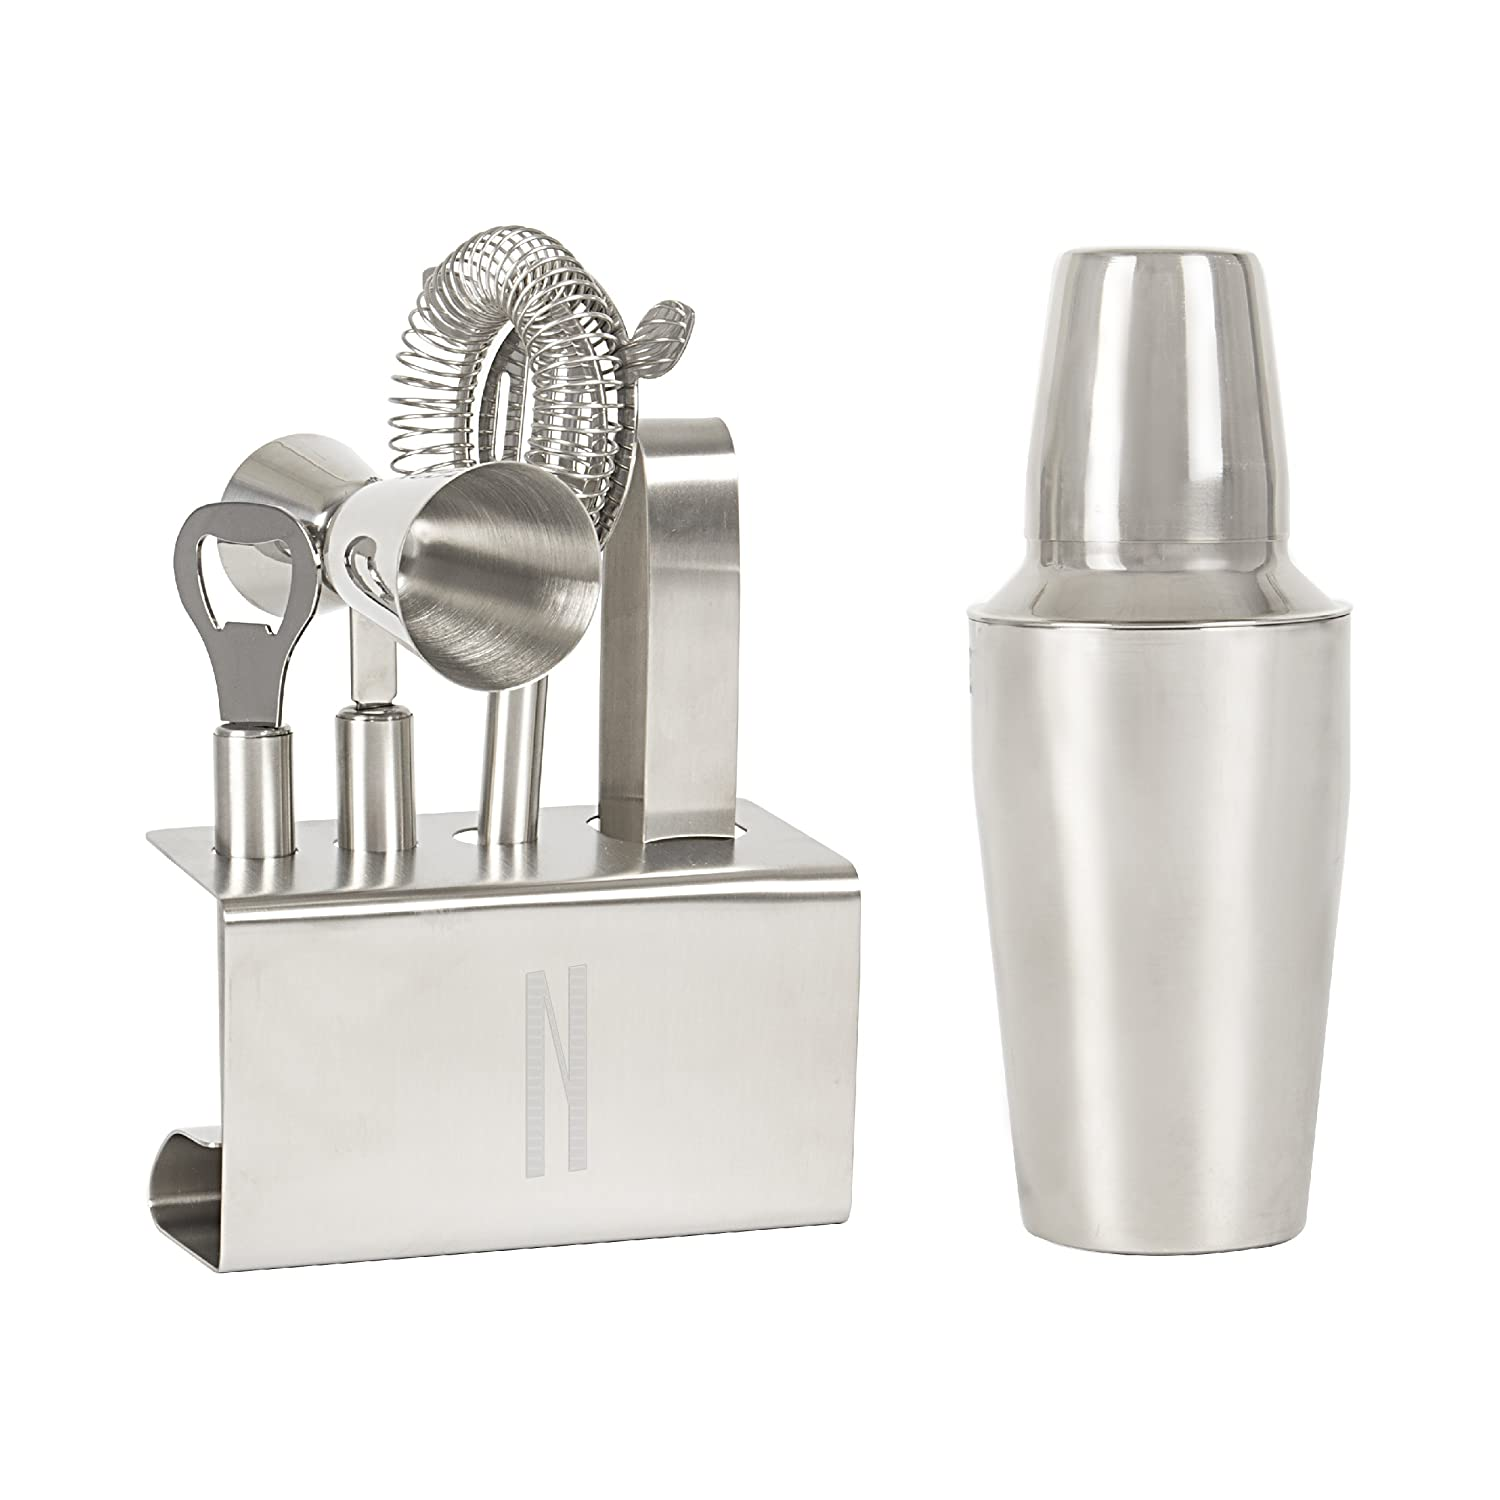 Letter N Cathys Concepts Personalized Stainless Steel Mixology Set